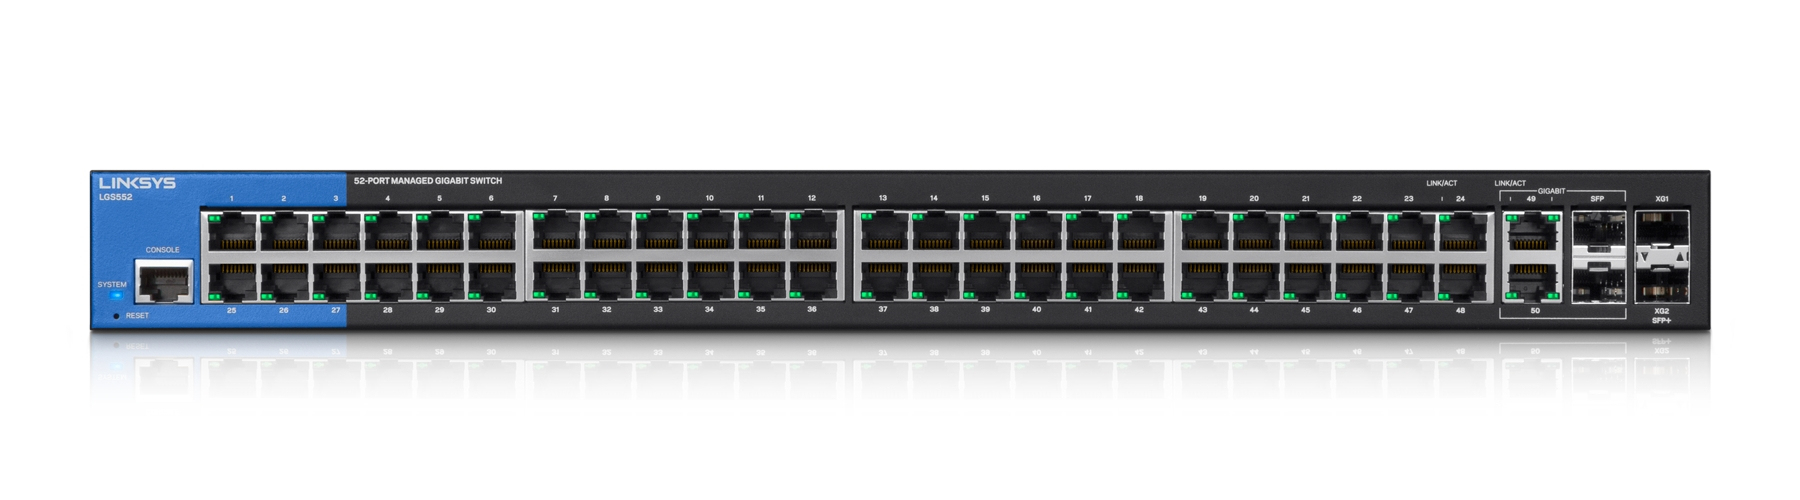 LINKSYS 52-PORT MANAGED GIGABIT SWITCH (LGS552)